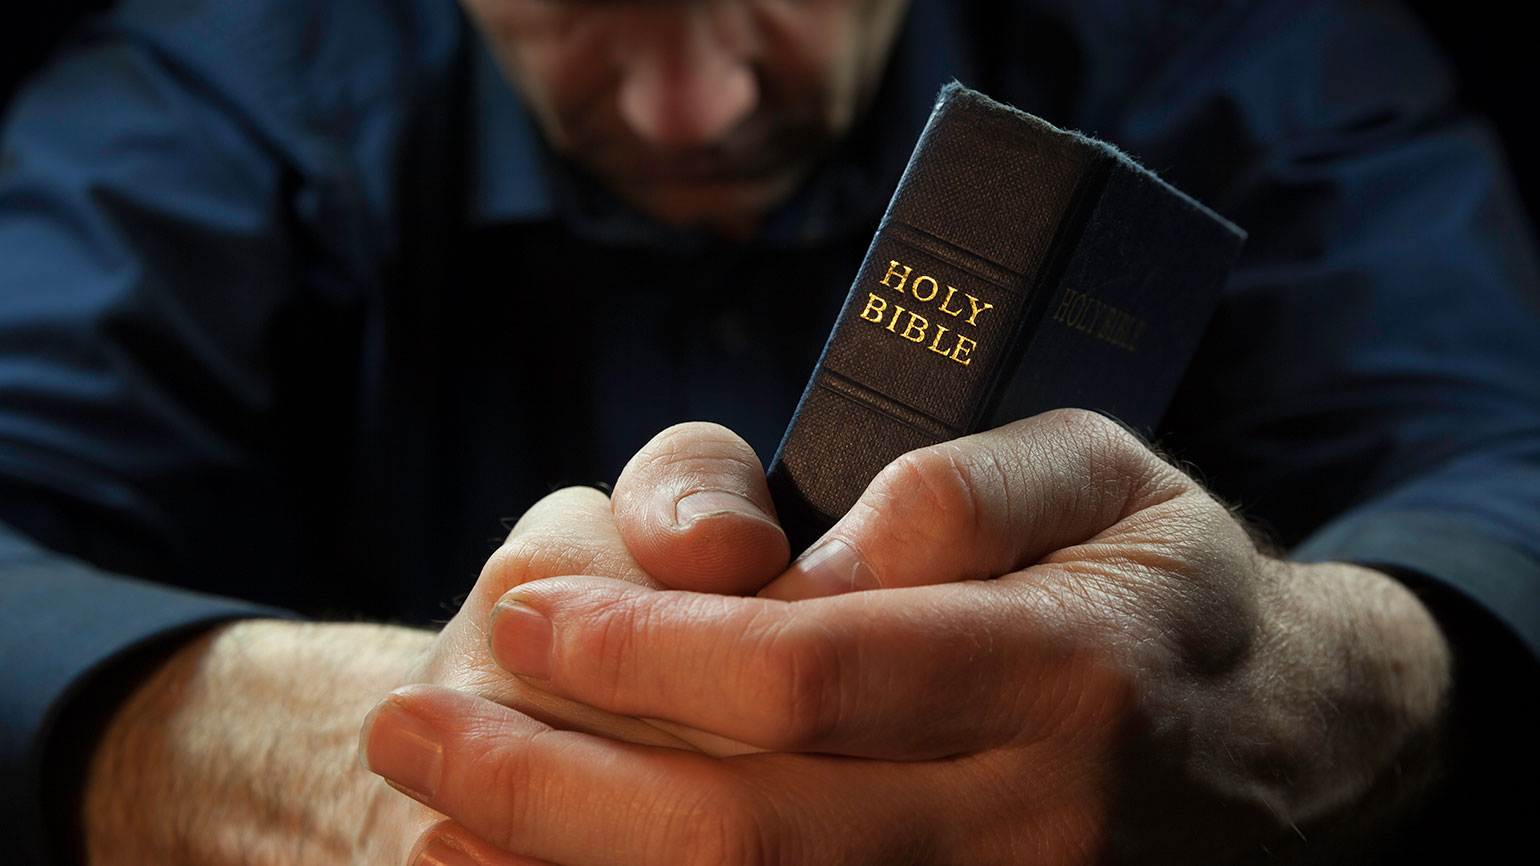 A man prays as his hands clasp a Bible